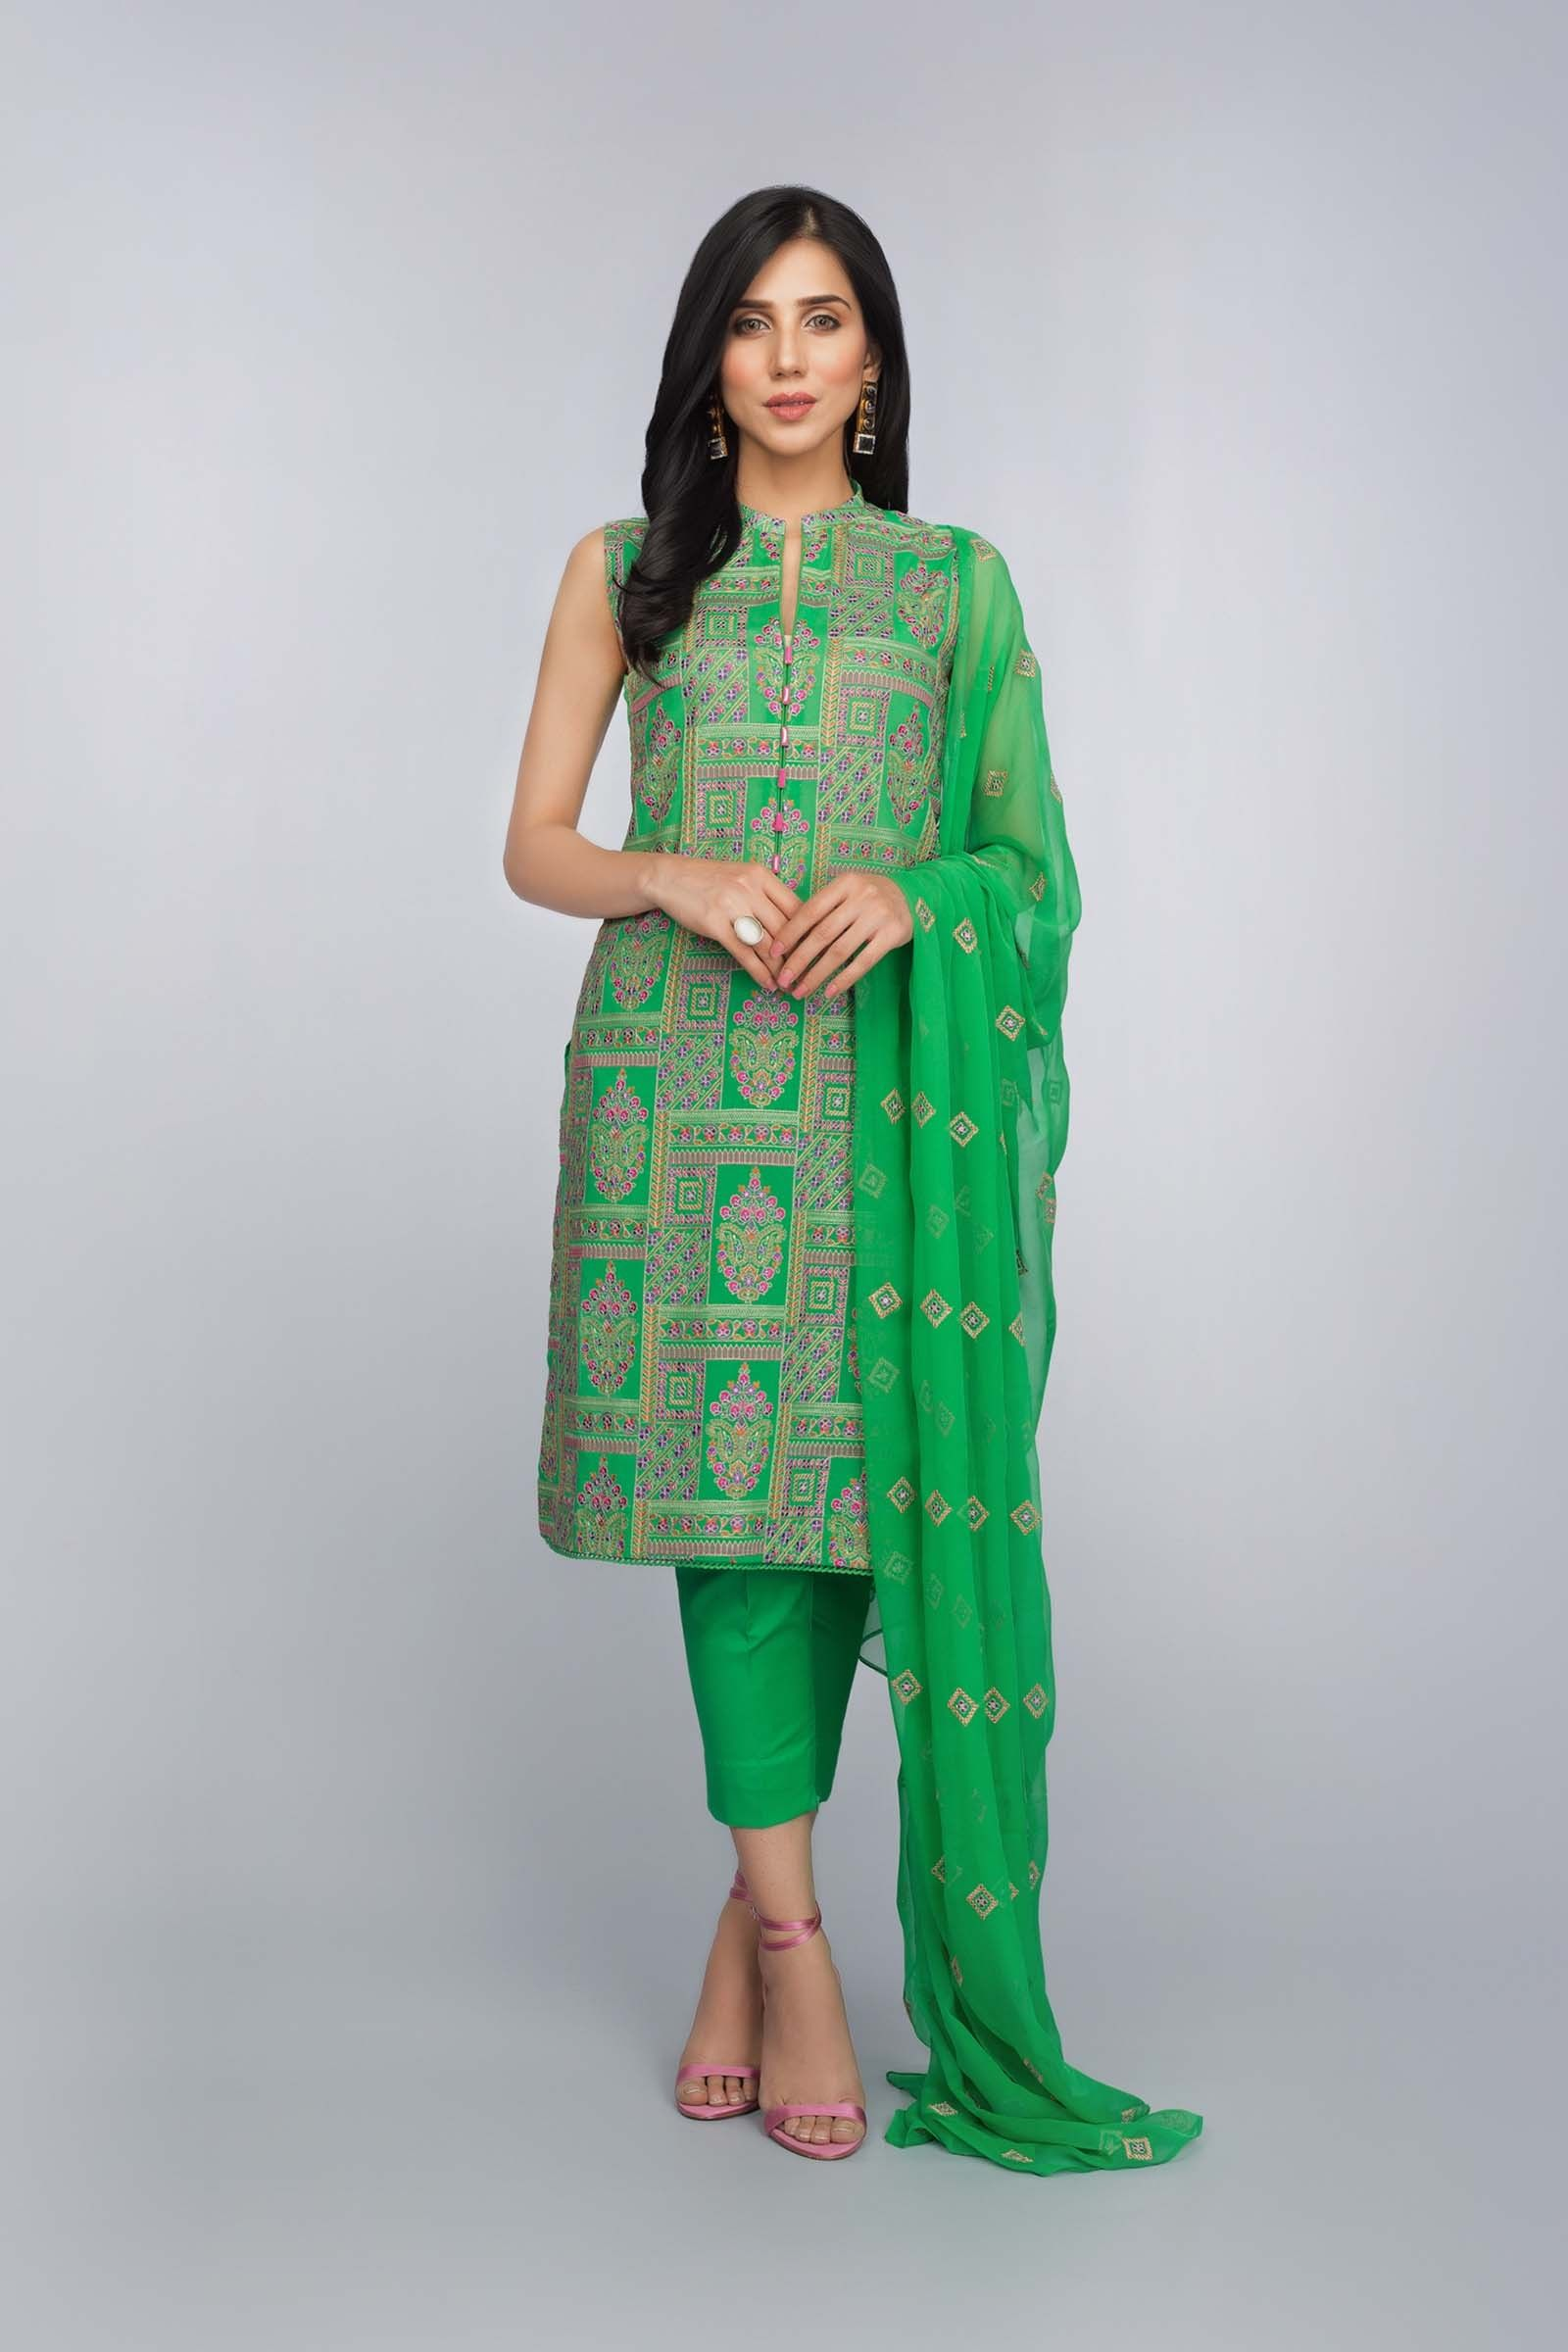 194d943a5d96 Buy Online Refreshing Green Unstitched Pakistani Lawn Suit by ...